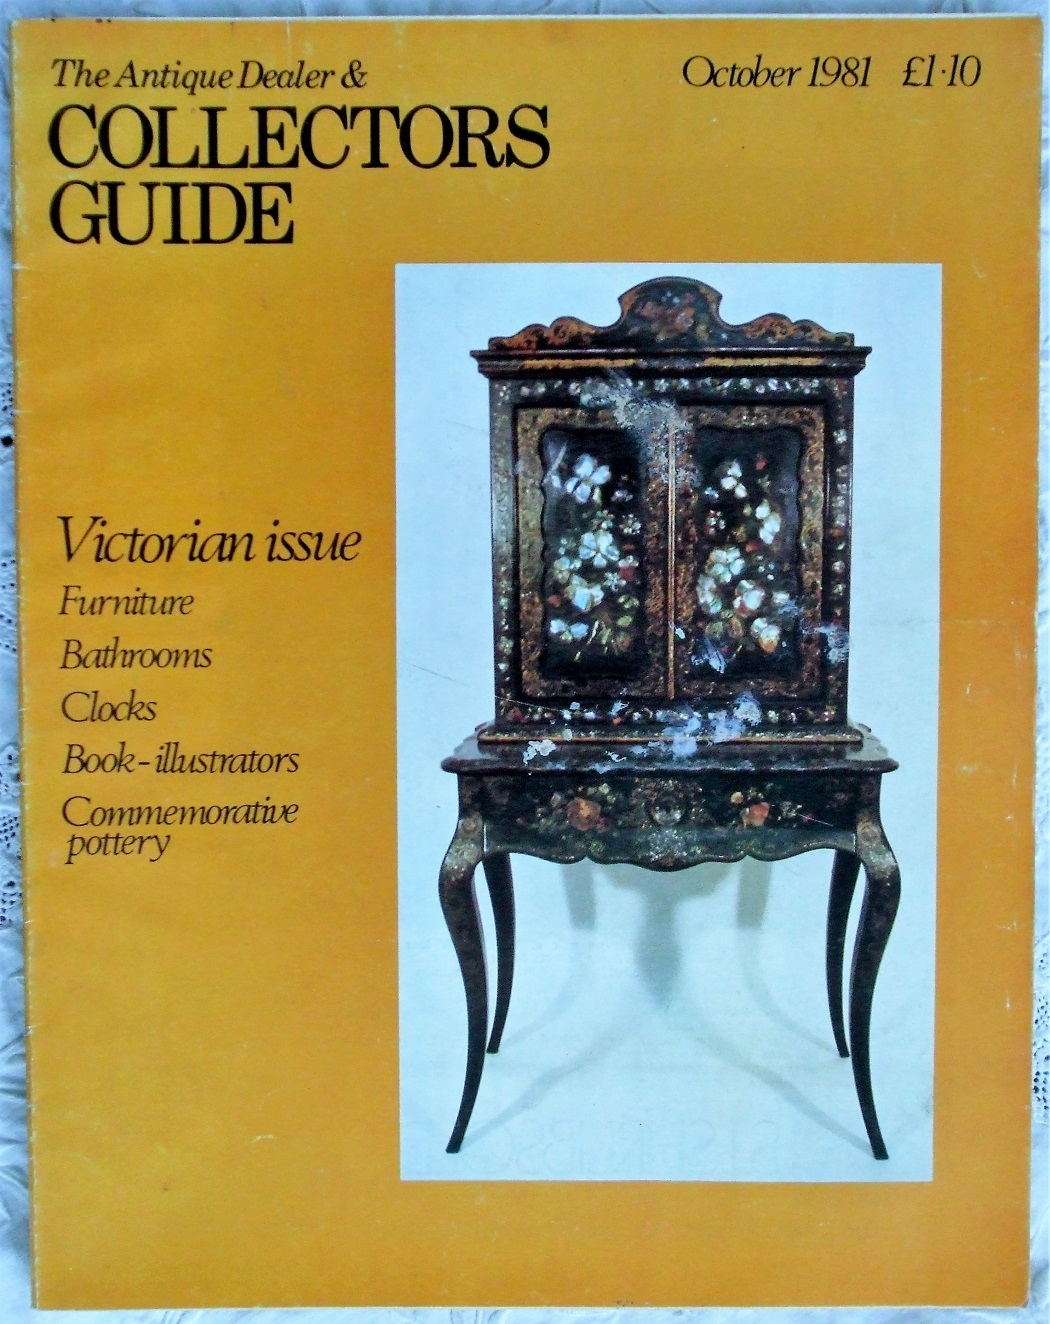 Collectors Guide October 1981